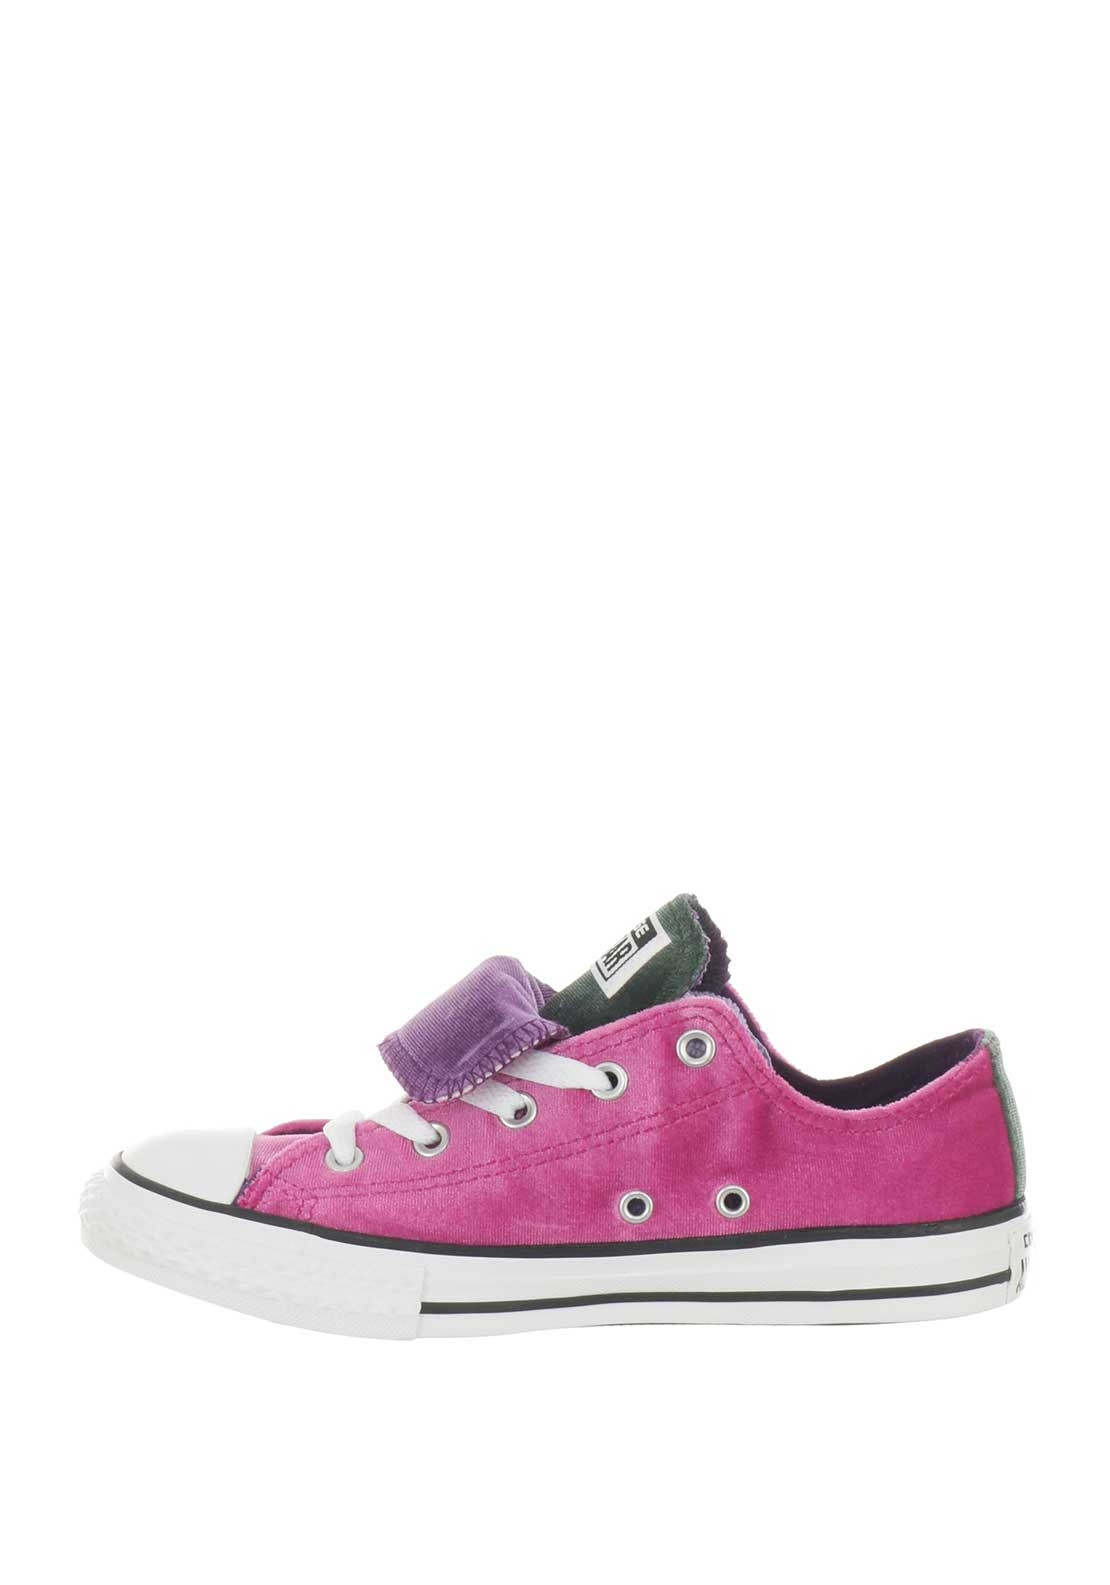 5b1a6cec2823 Converse Girls Velvet Low OX Trainers